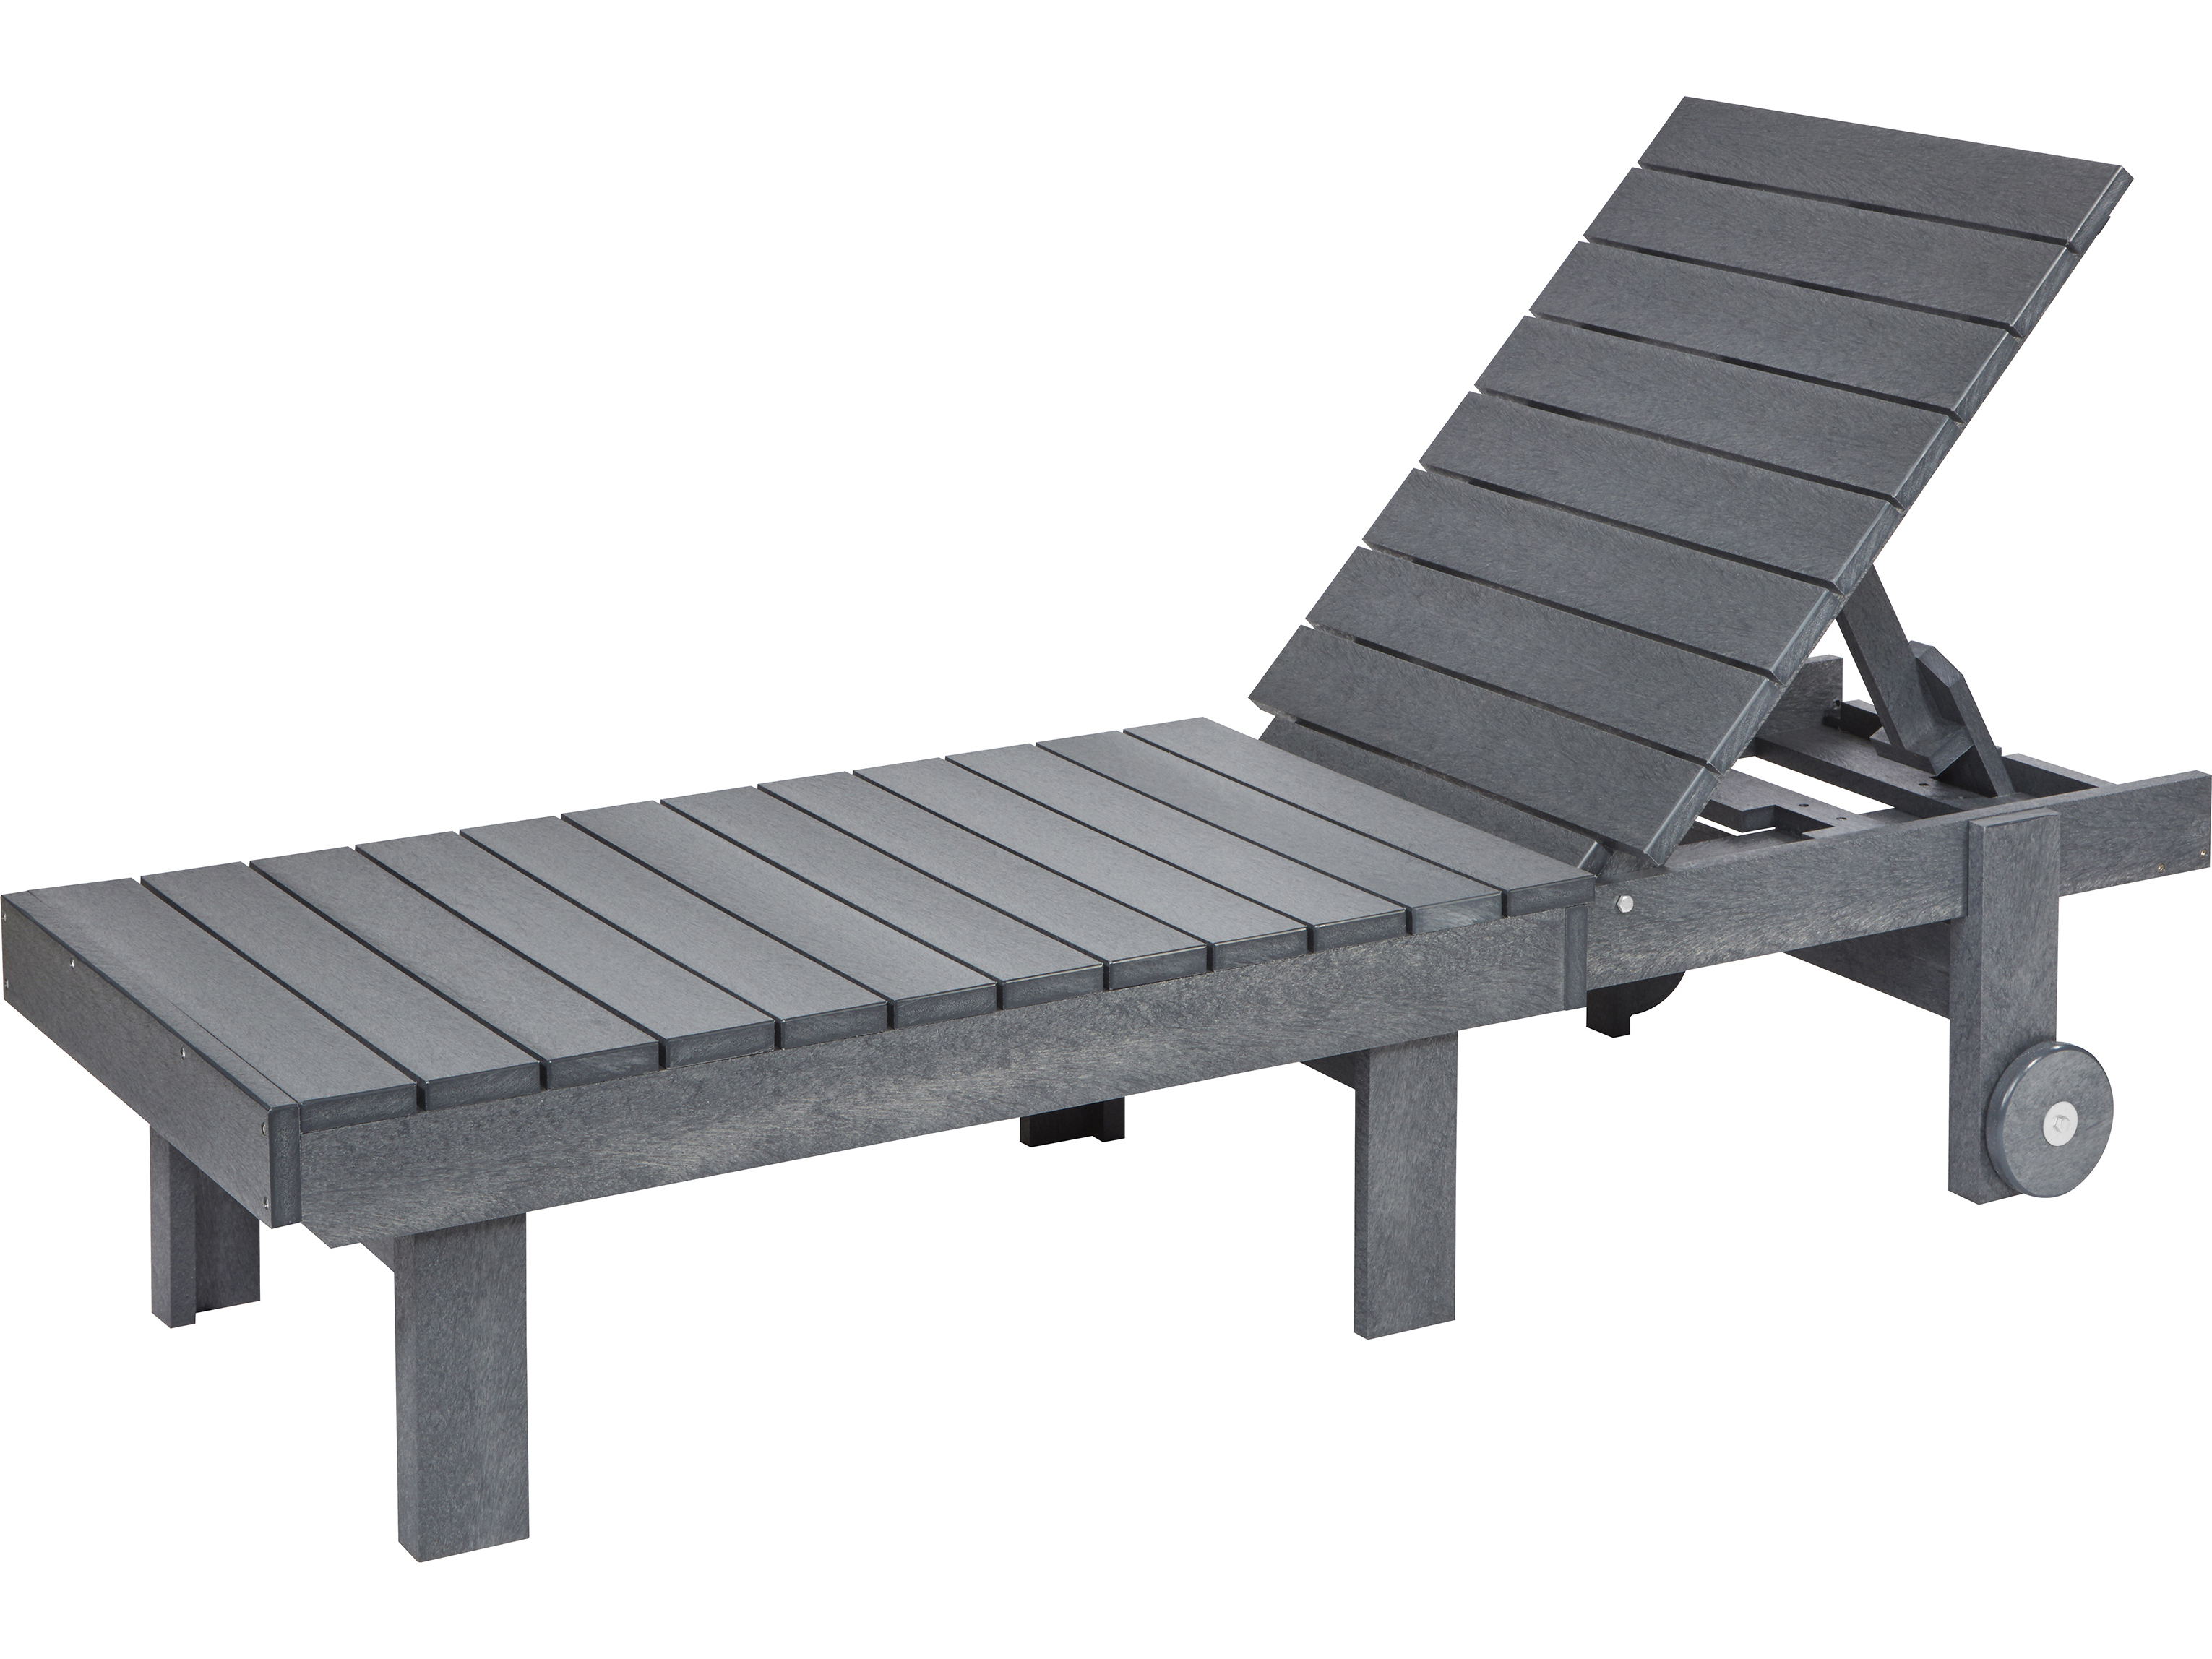 Widely Used Nautical 3 Piece Outdoor Chaise Lounge Sets With Wheels And Table In C.r (View 21 of 25)